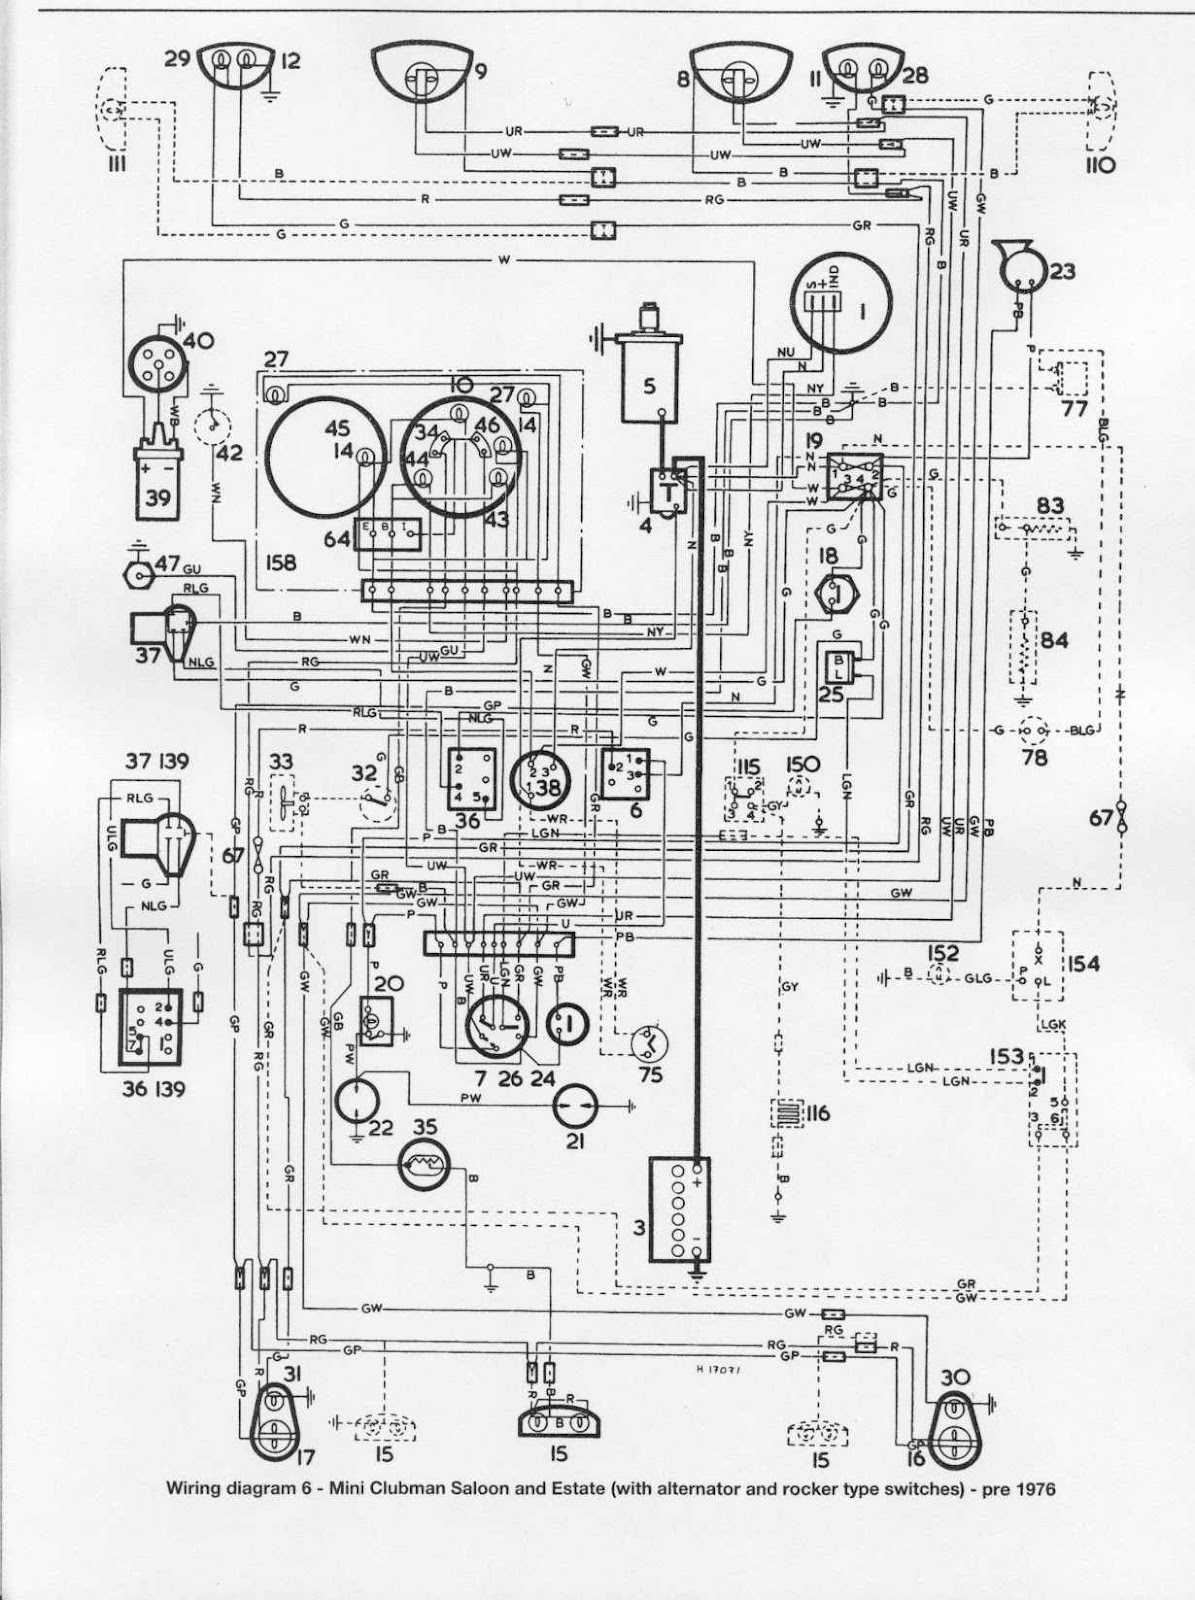 mini cooper 2003 wiring diagram. mini. wiring diagram images mini cooper ecu wiring diagram 2003 mini cooper audio wiring diagram